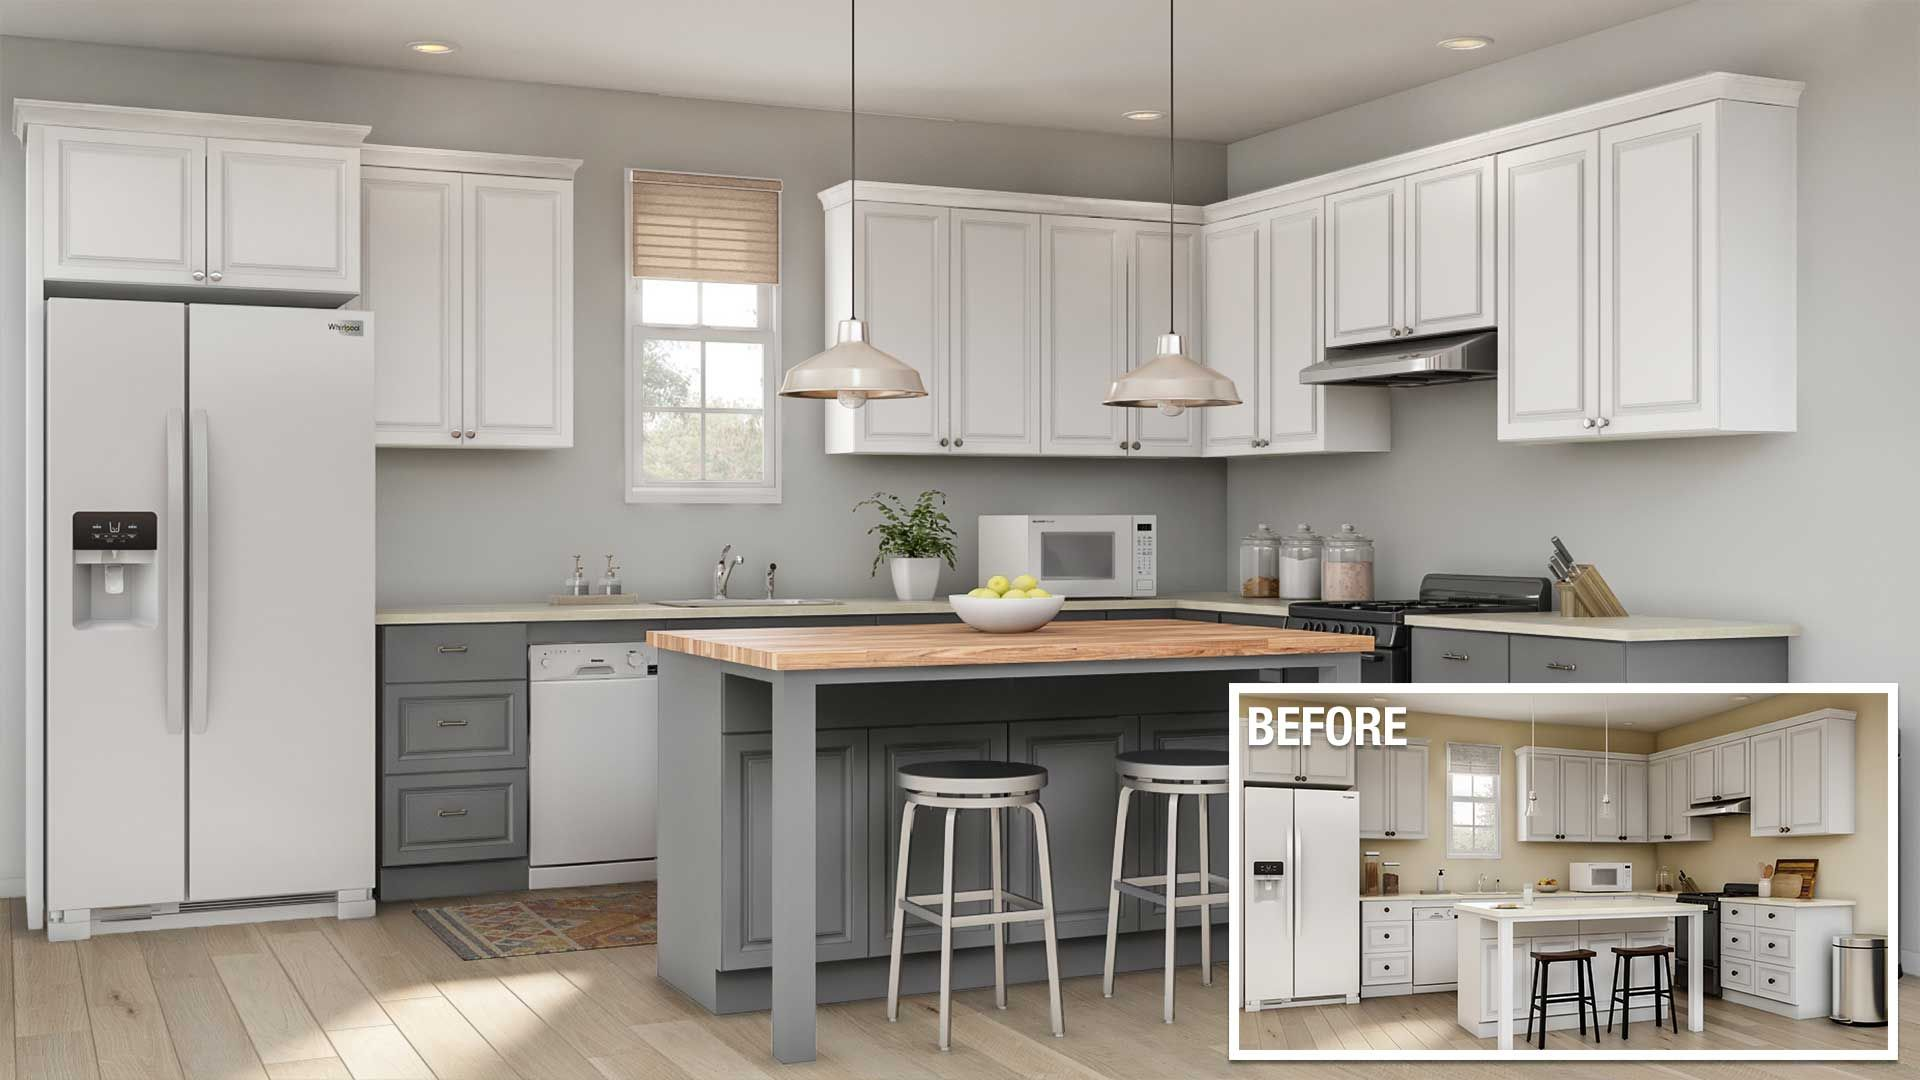 What You Should Know About Remodel Kitchen Home Depot Kitchen